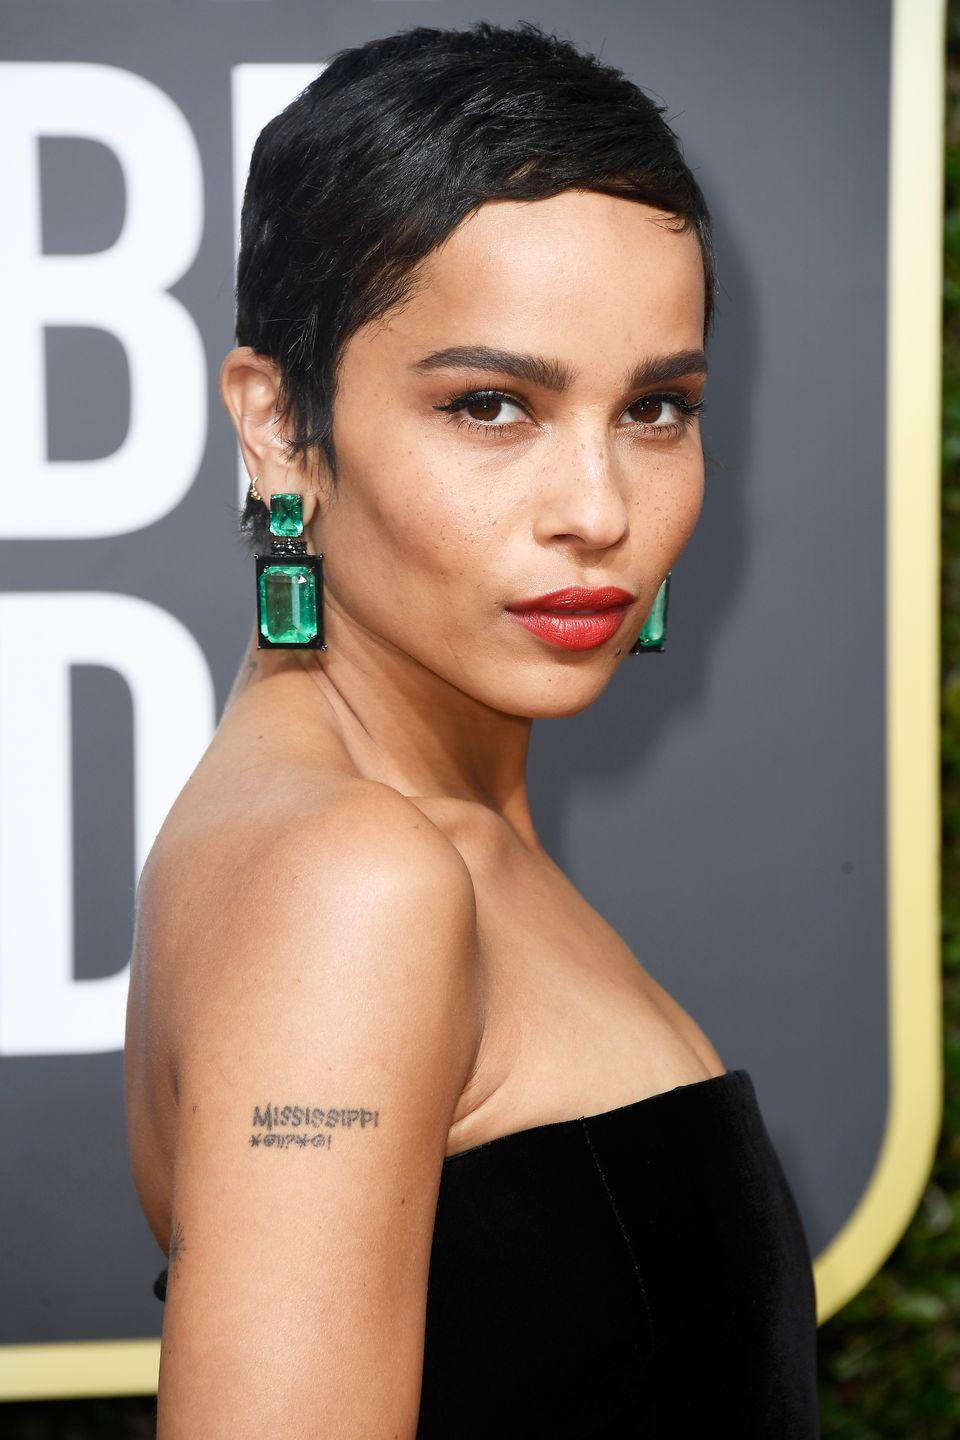 """<p>Perhaps this is one of the most daring cuts amongst the bunch, but actress <strong>Zoe Kravitz</strong> makes this very short crop look edgy, cool and super chic. For a smooth look without shine or crunch from a <a href=""""https://www.goodhousekeeping.com/beauty-products/g33809765/best-gel-for-curly-hair/"""" rel=""""nofollow noopener"""" target=""""_blank"""" data-ylk=""""slk:hair gel"""" class=""""link rapid-noclick-resp"""">hair gel</a>, try wrapping your hair with a <a href=""""https://www.goodhousekeeping.com/uk/fashion-beauty/hair-advice/a32014757/silk-hair-wrap/"""" rel=""""nofollow noopener"""" target=""""_blank"""" data-ylk=""""slk:silk or satin scarf"""" class=""""link rapid-noclick-resp"""">silk or satin scarf</a> overnight to keep your hair in place.<strong><br></strong></p>"""